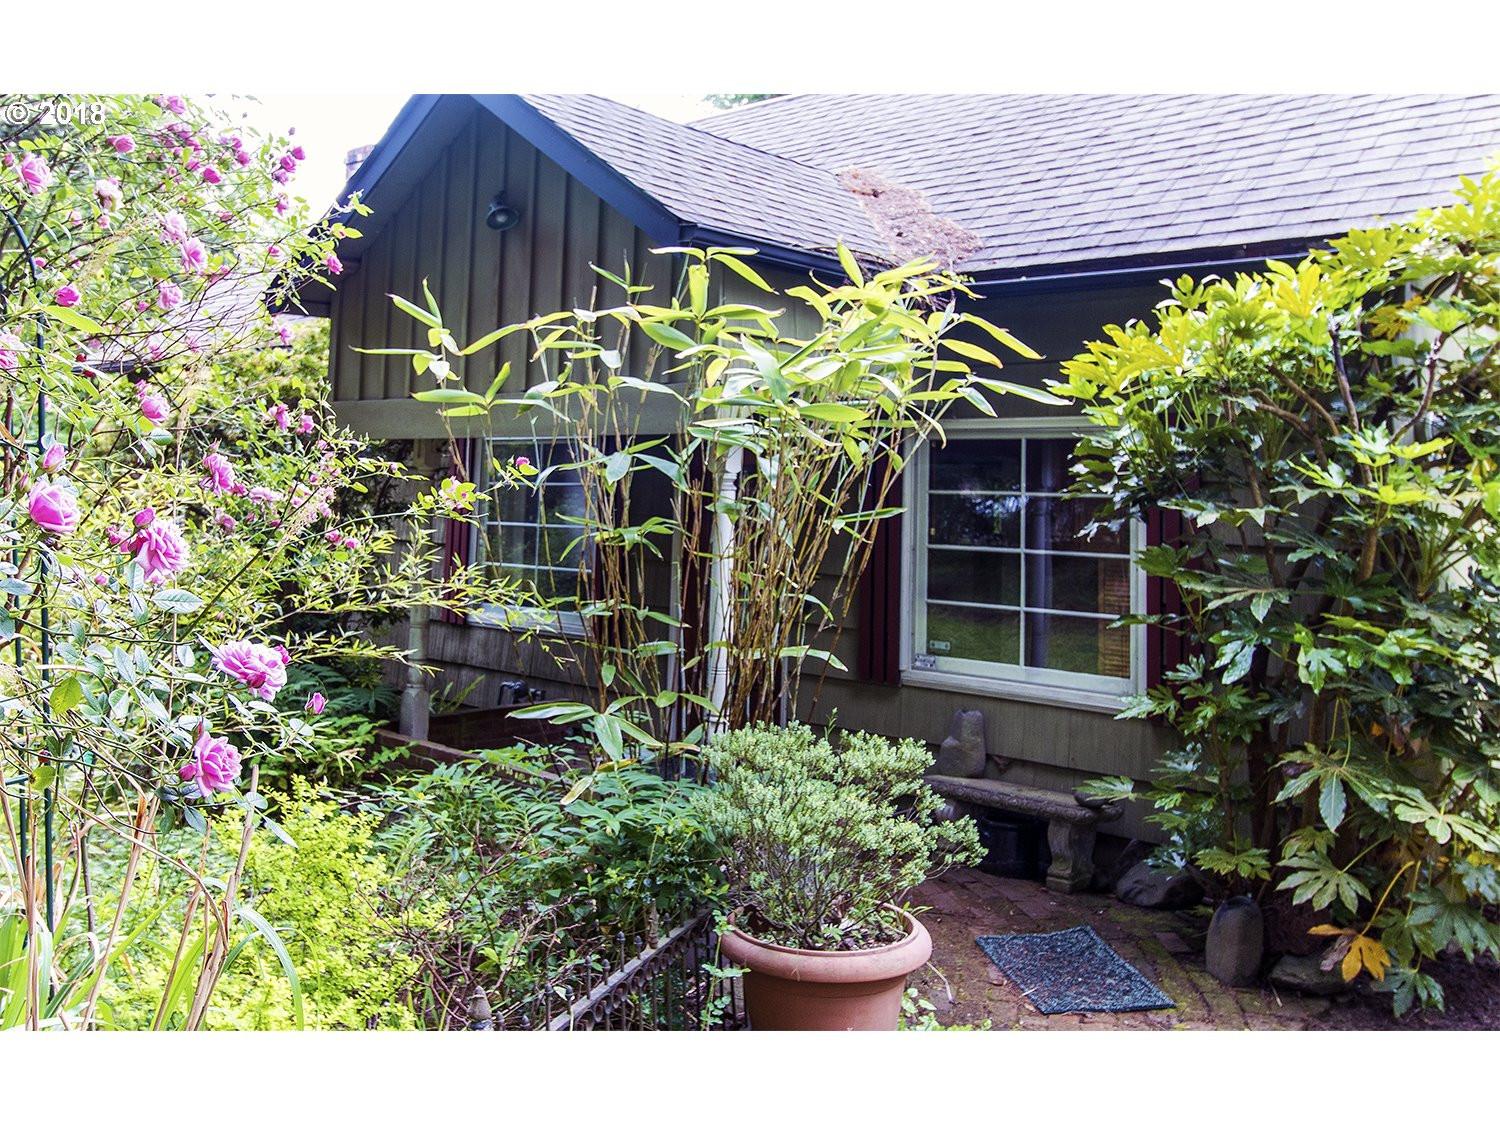 Awesome location-Walk to shops-restaurants-Rec Center-Fanno Creek Trail just 2 houses away!Could be bedroom in family & loft -Lot is dividable! Half the house built in 1970s, half in 1920s. New section has soaring vaults-fireplace-leaded glass windows-Huge Family room w/french doors to deck. Lot is gorgeous-It is .44 Acres-Very private w/pretty trees.Could be divided into 2 .2 acre lots! Sewer to go in this summer w/extra sewer stub